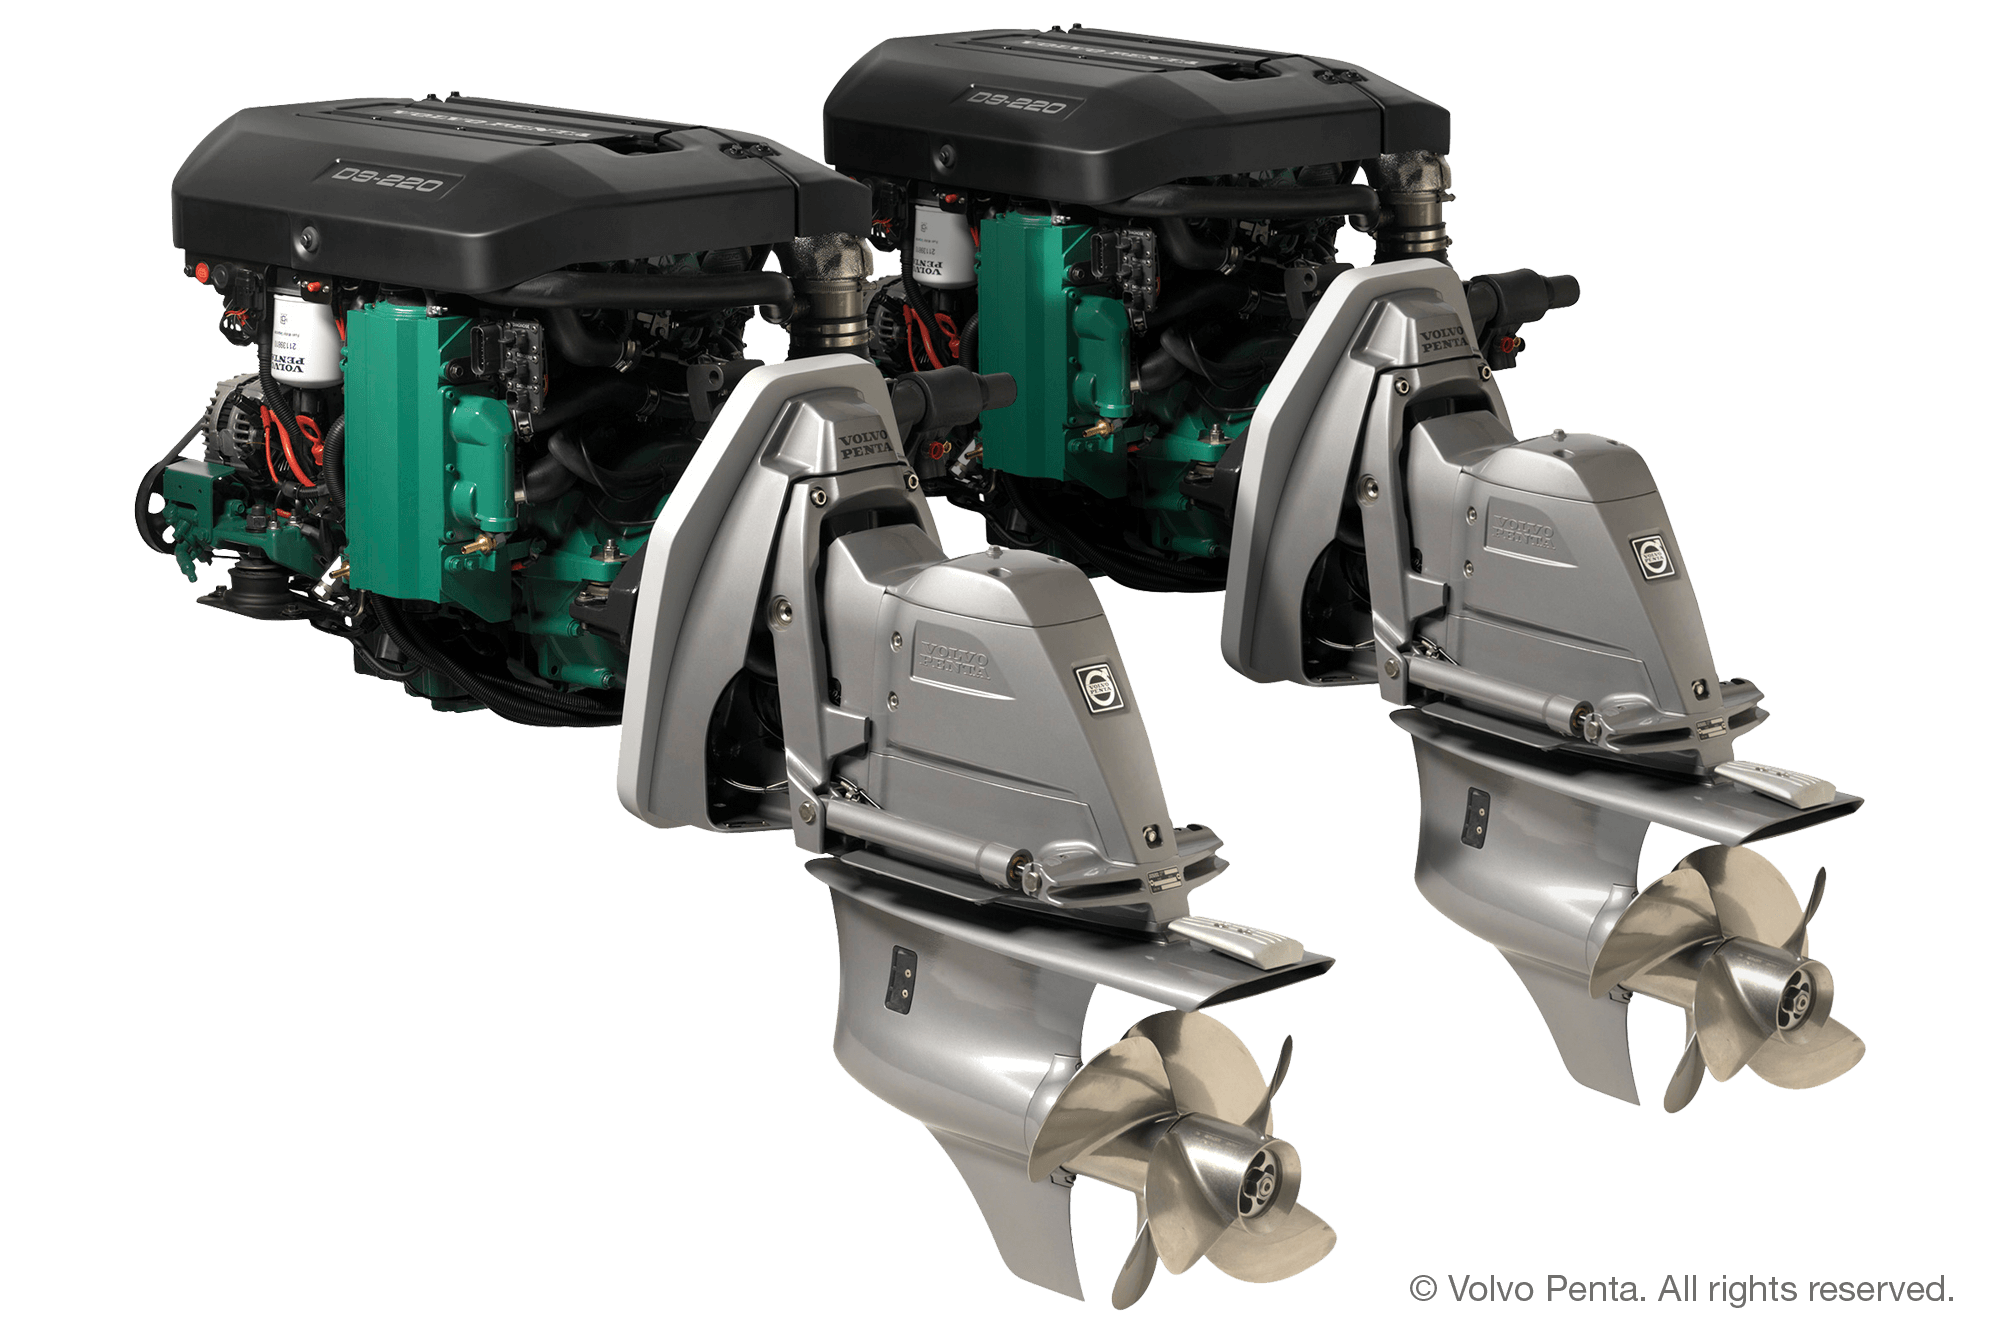 2 Volvo Penta D3-220 (220 hp), Duoprop stern drive with electric steering with propeller IH3